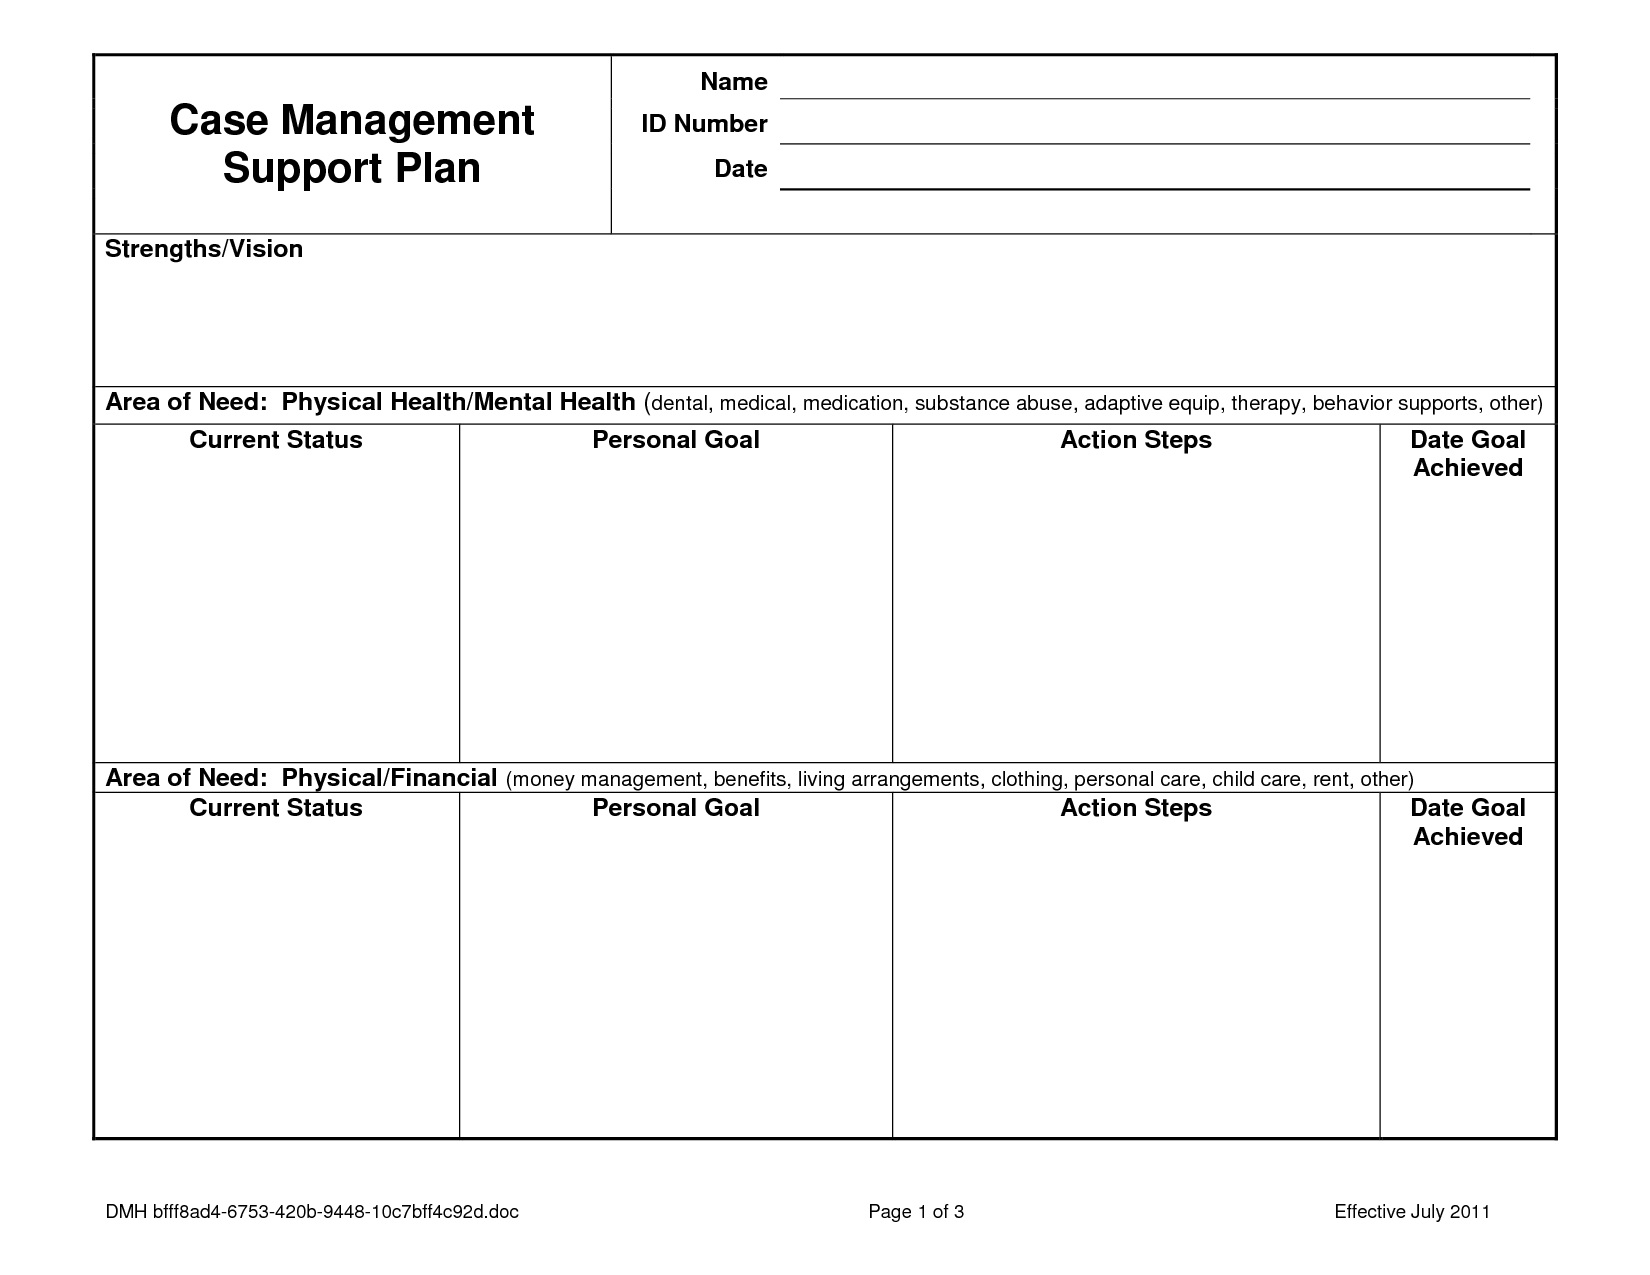 case notes template | CASE MANAGEMENT SERVICE PLAN | case notes ...